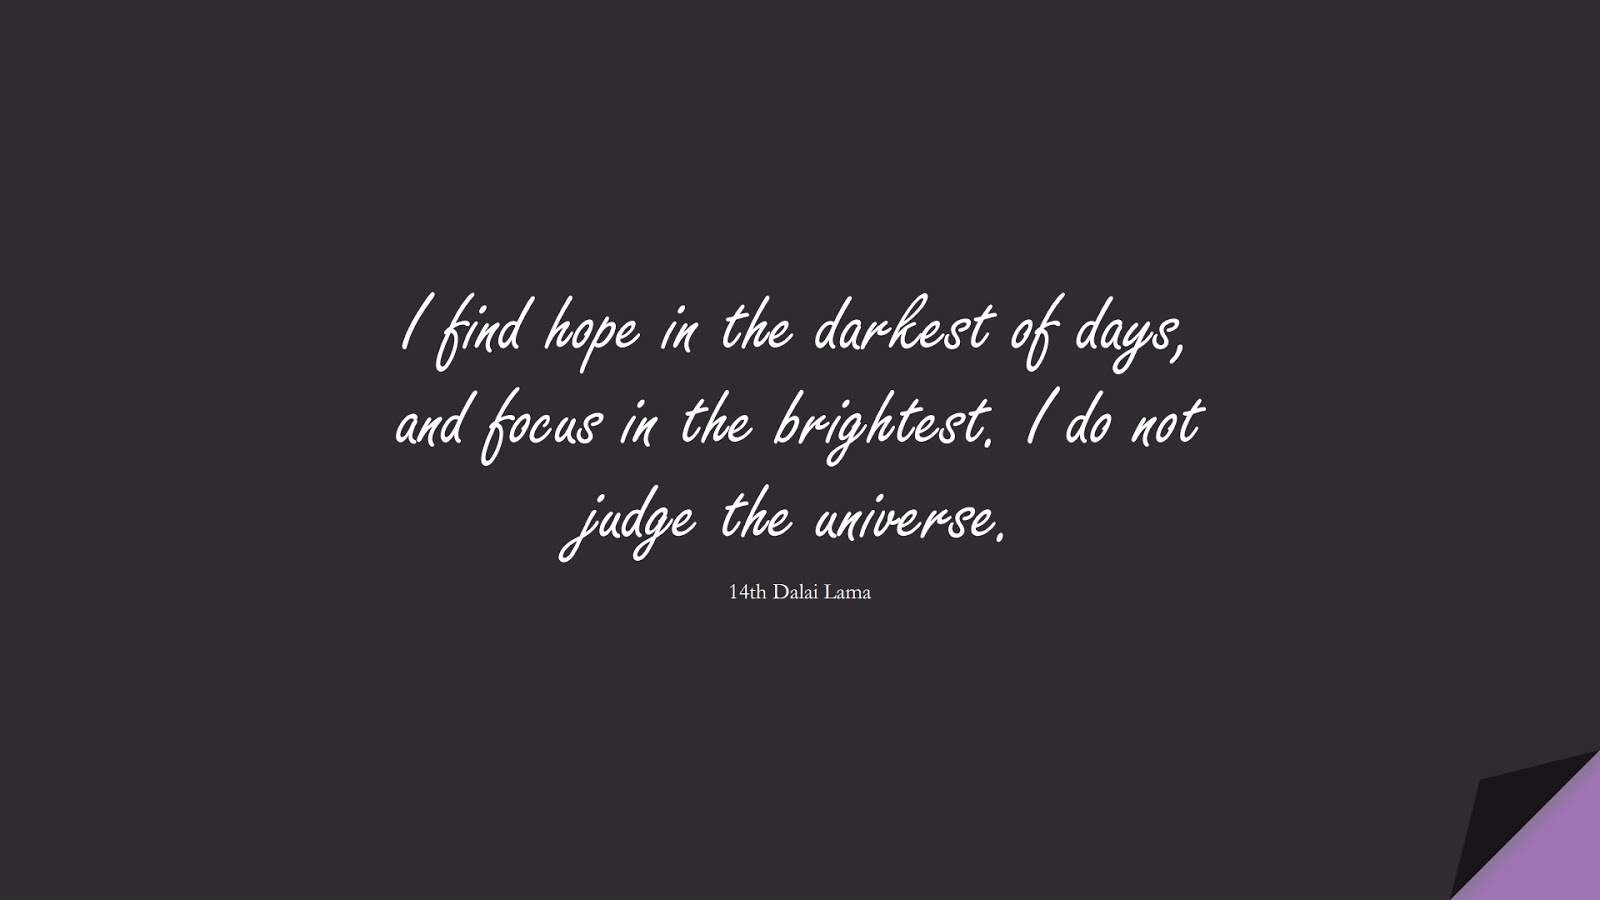 I find hope in the darkest of days, and focus in the brightest. I do not judge the universe. (14th Dalai Lama);  #EncouragingQuotes